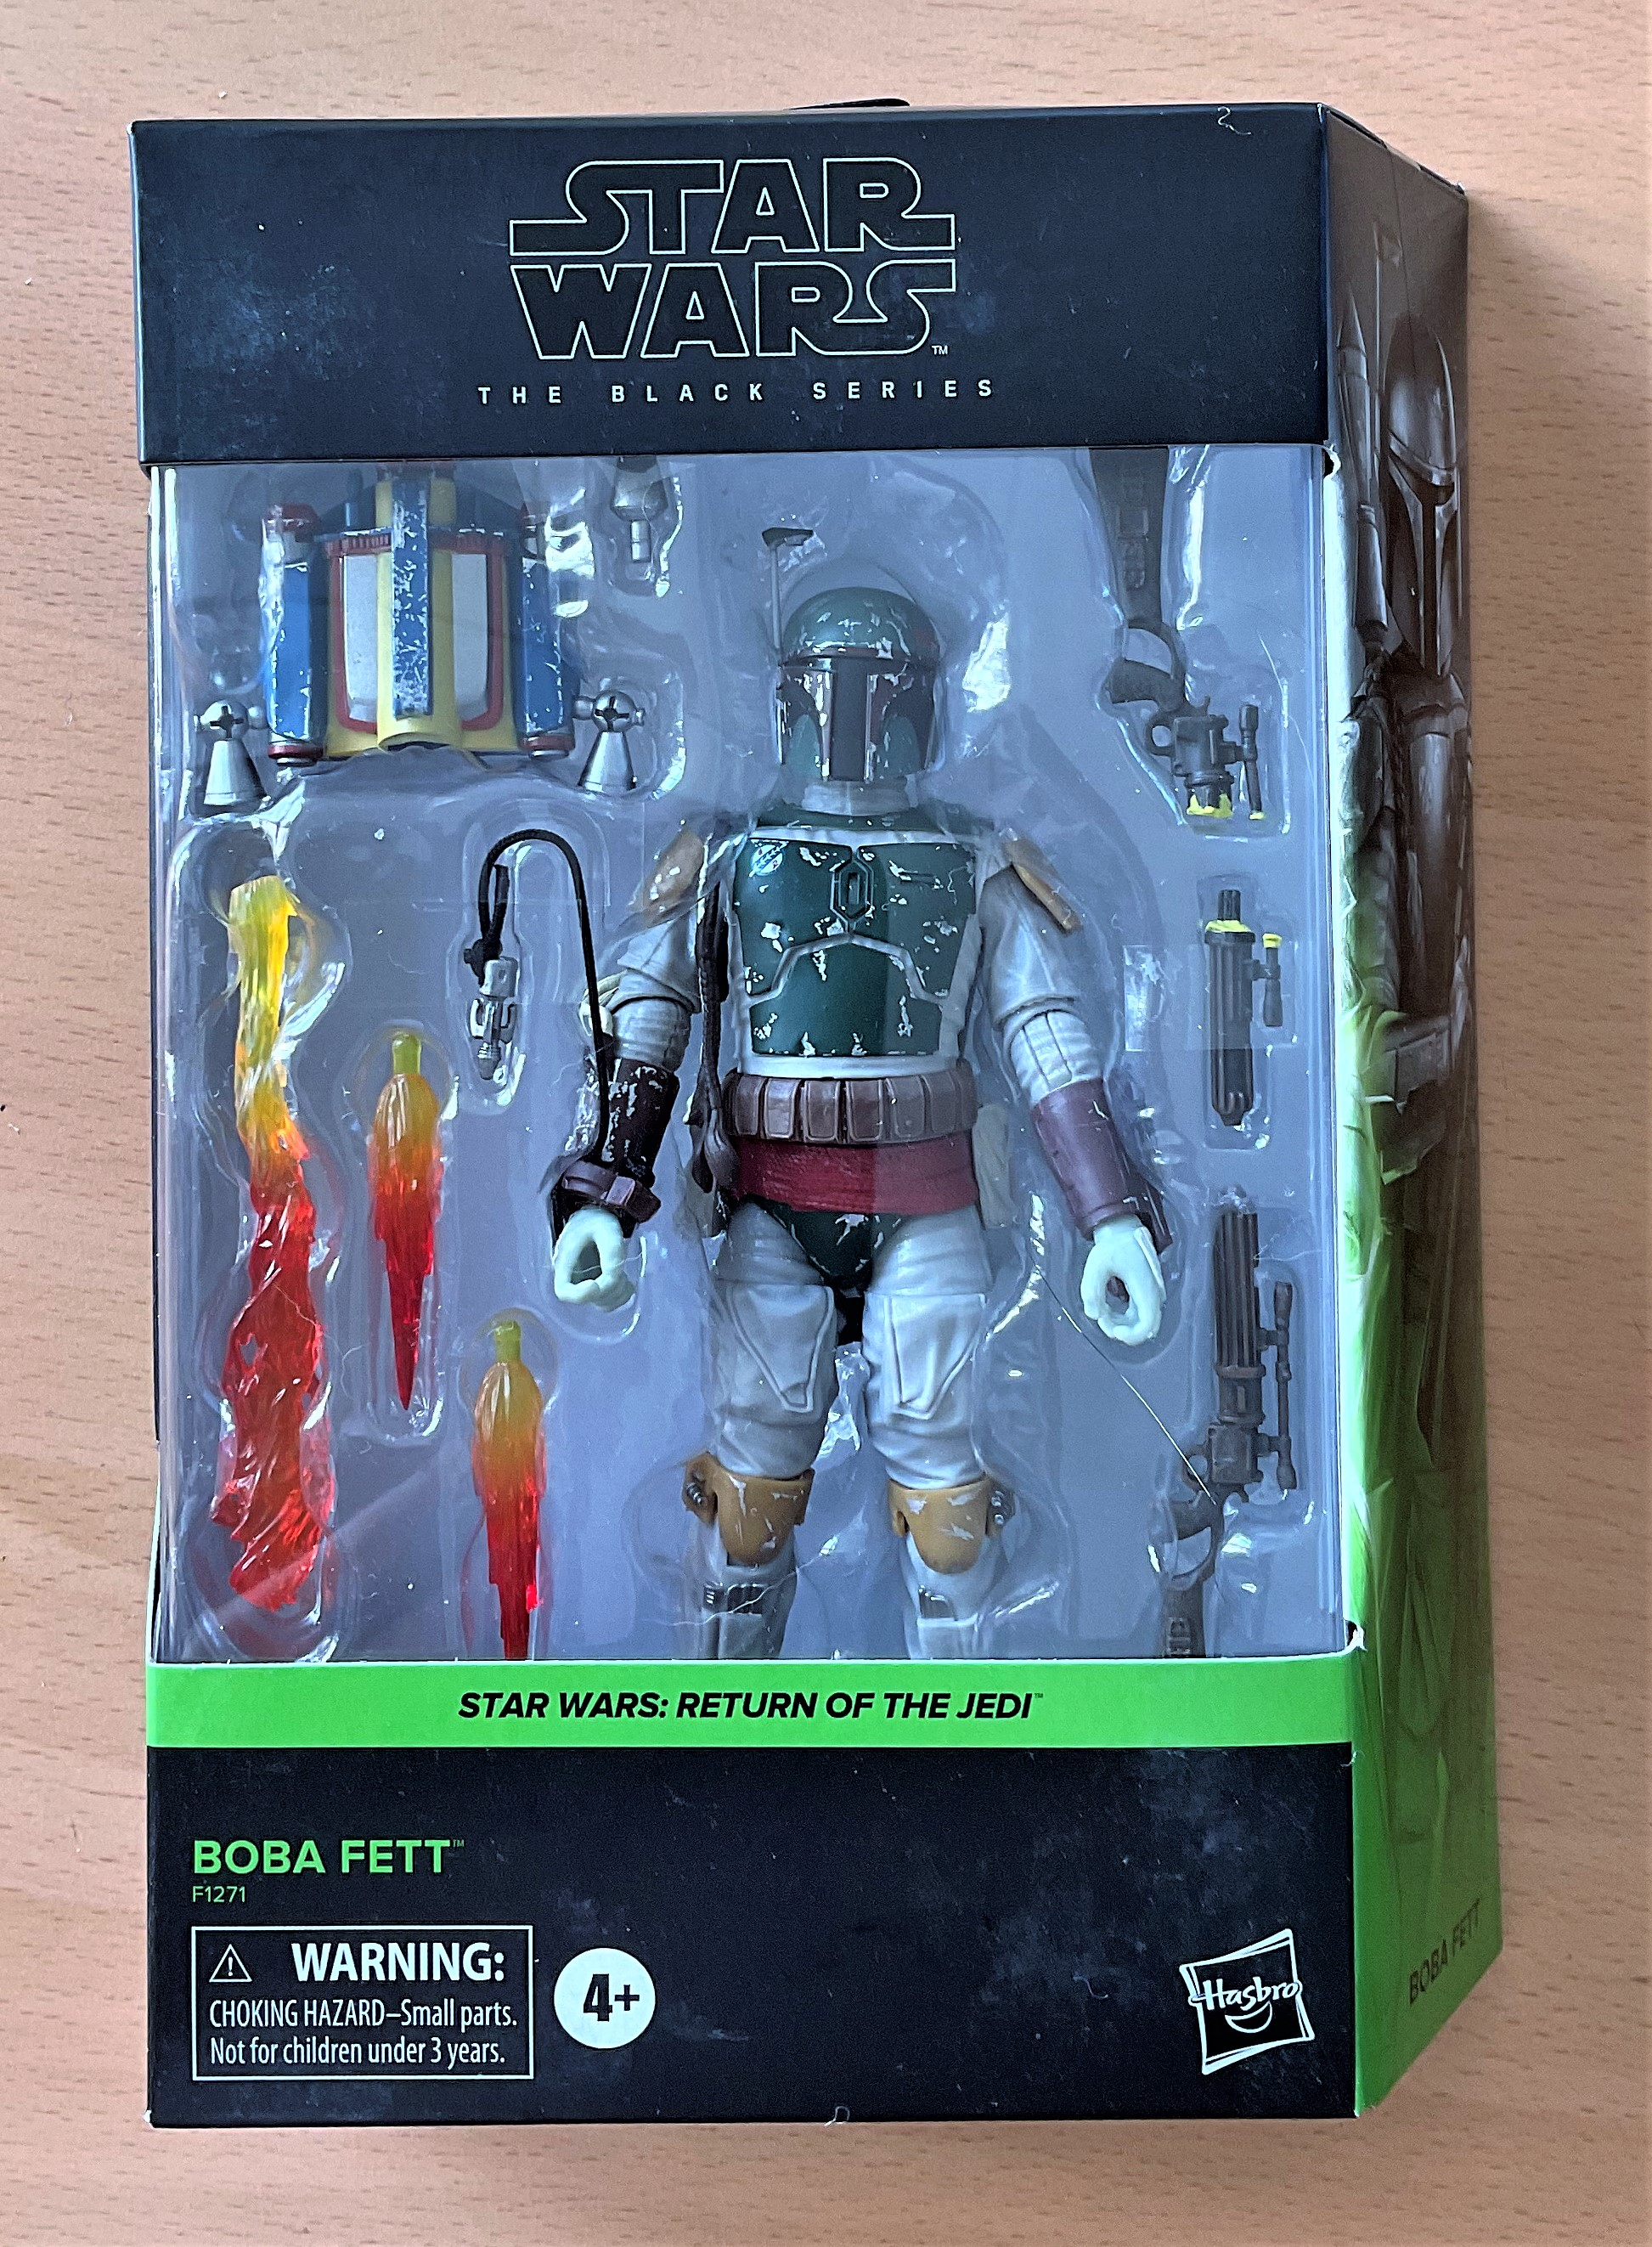 Star Wars, The Black Series miniature action figure of Boba Fett taken from Star Wars; Return of the - Image 3 of 3